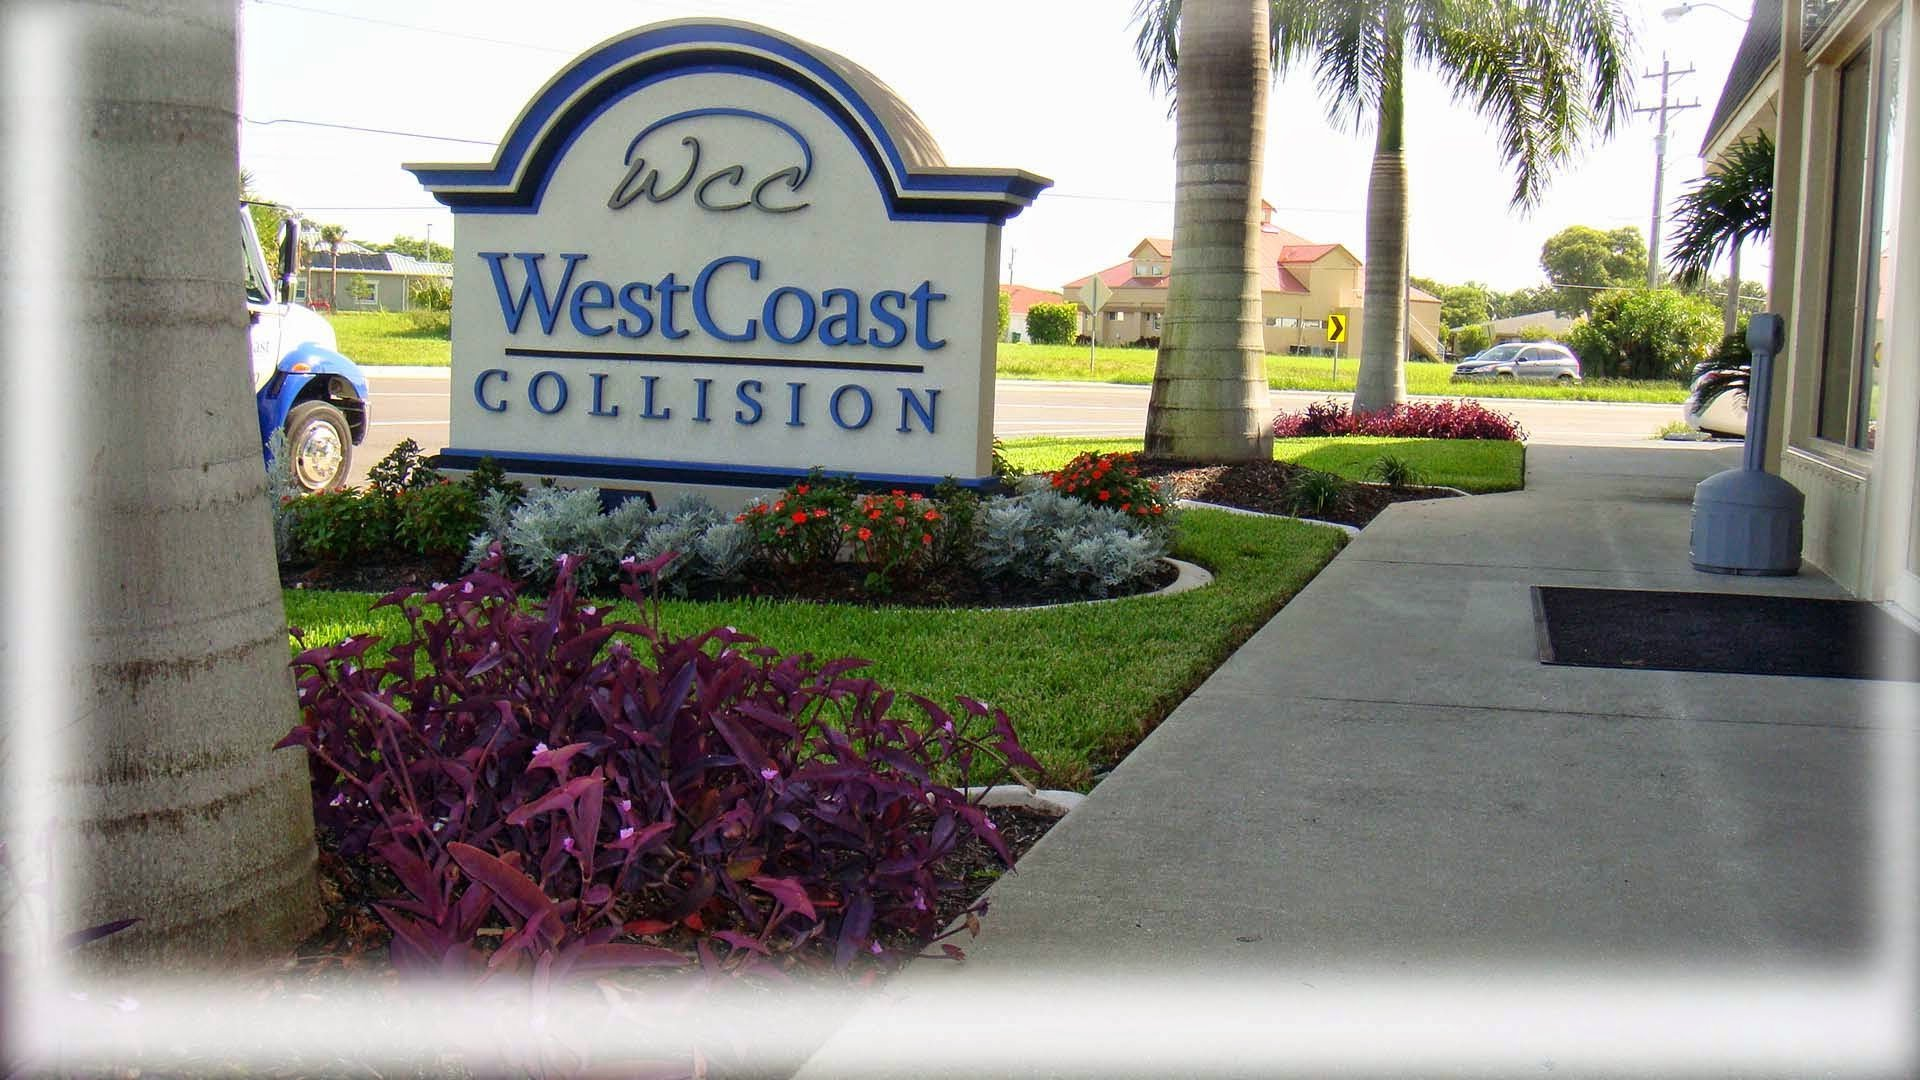 West Coast Collision | Sign